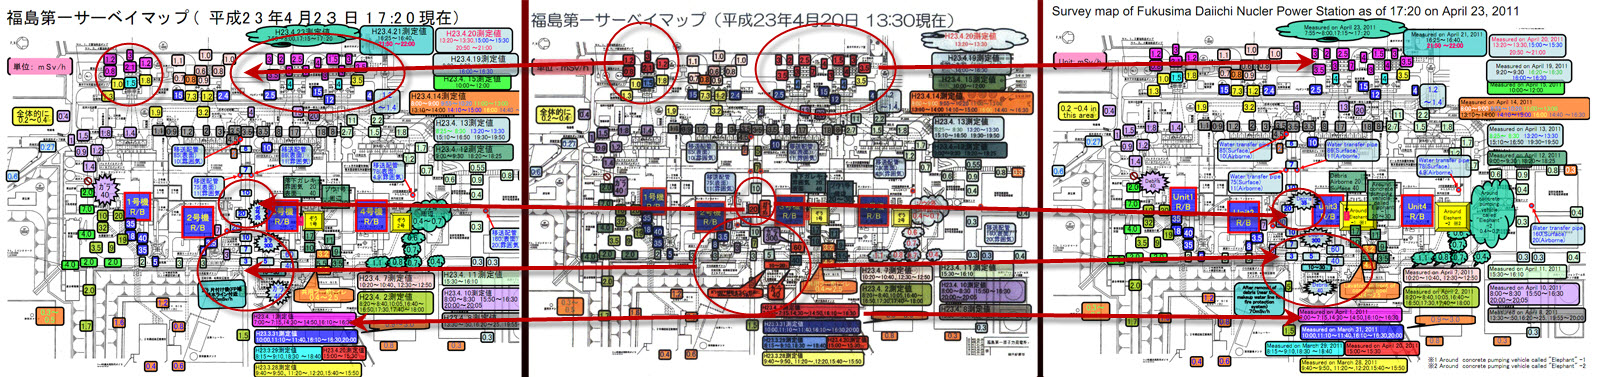 The chart in the middle is the map transmitted to the NRC by TEPCO, the chart on the left is the public map in Japanese, and on the right the public map in English